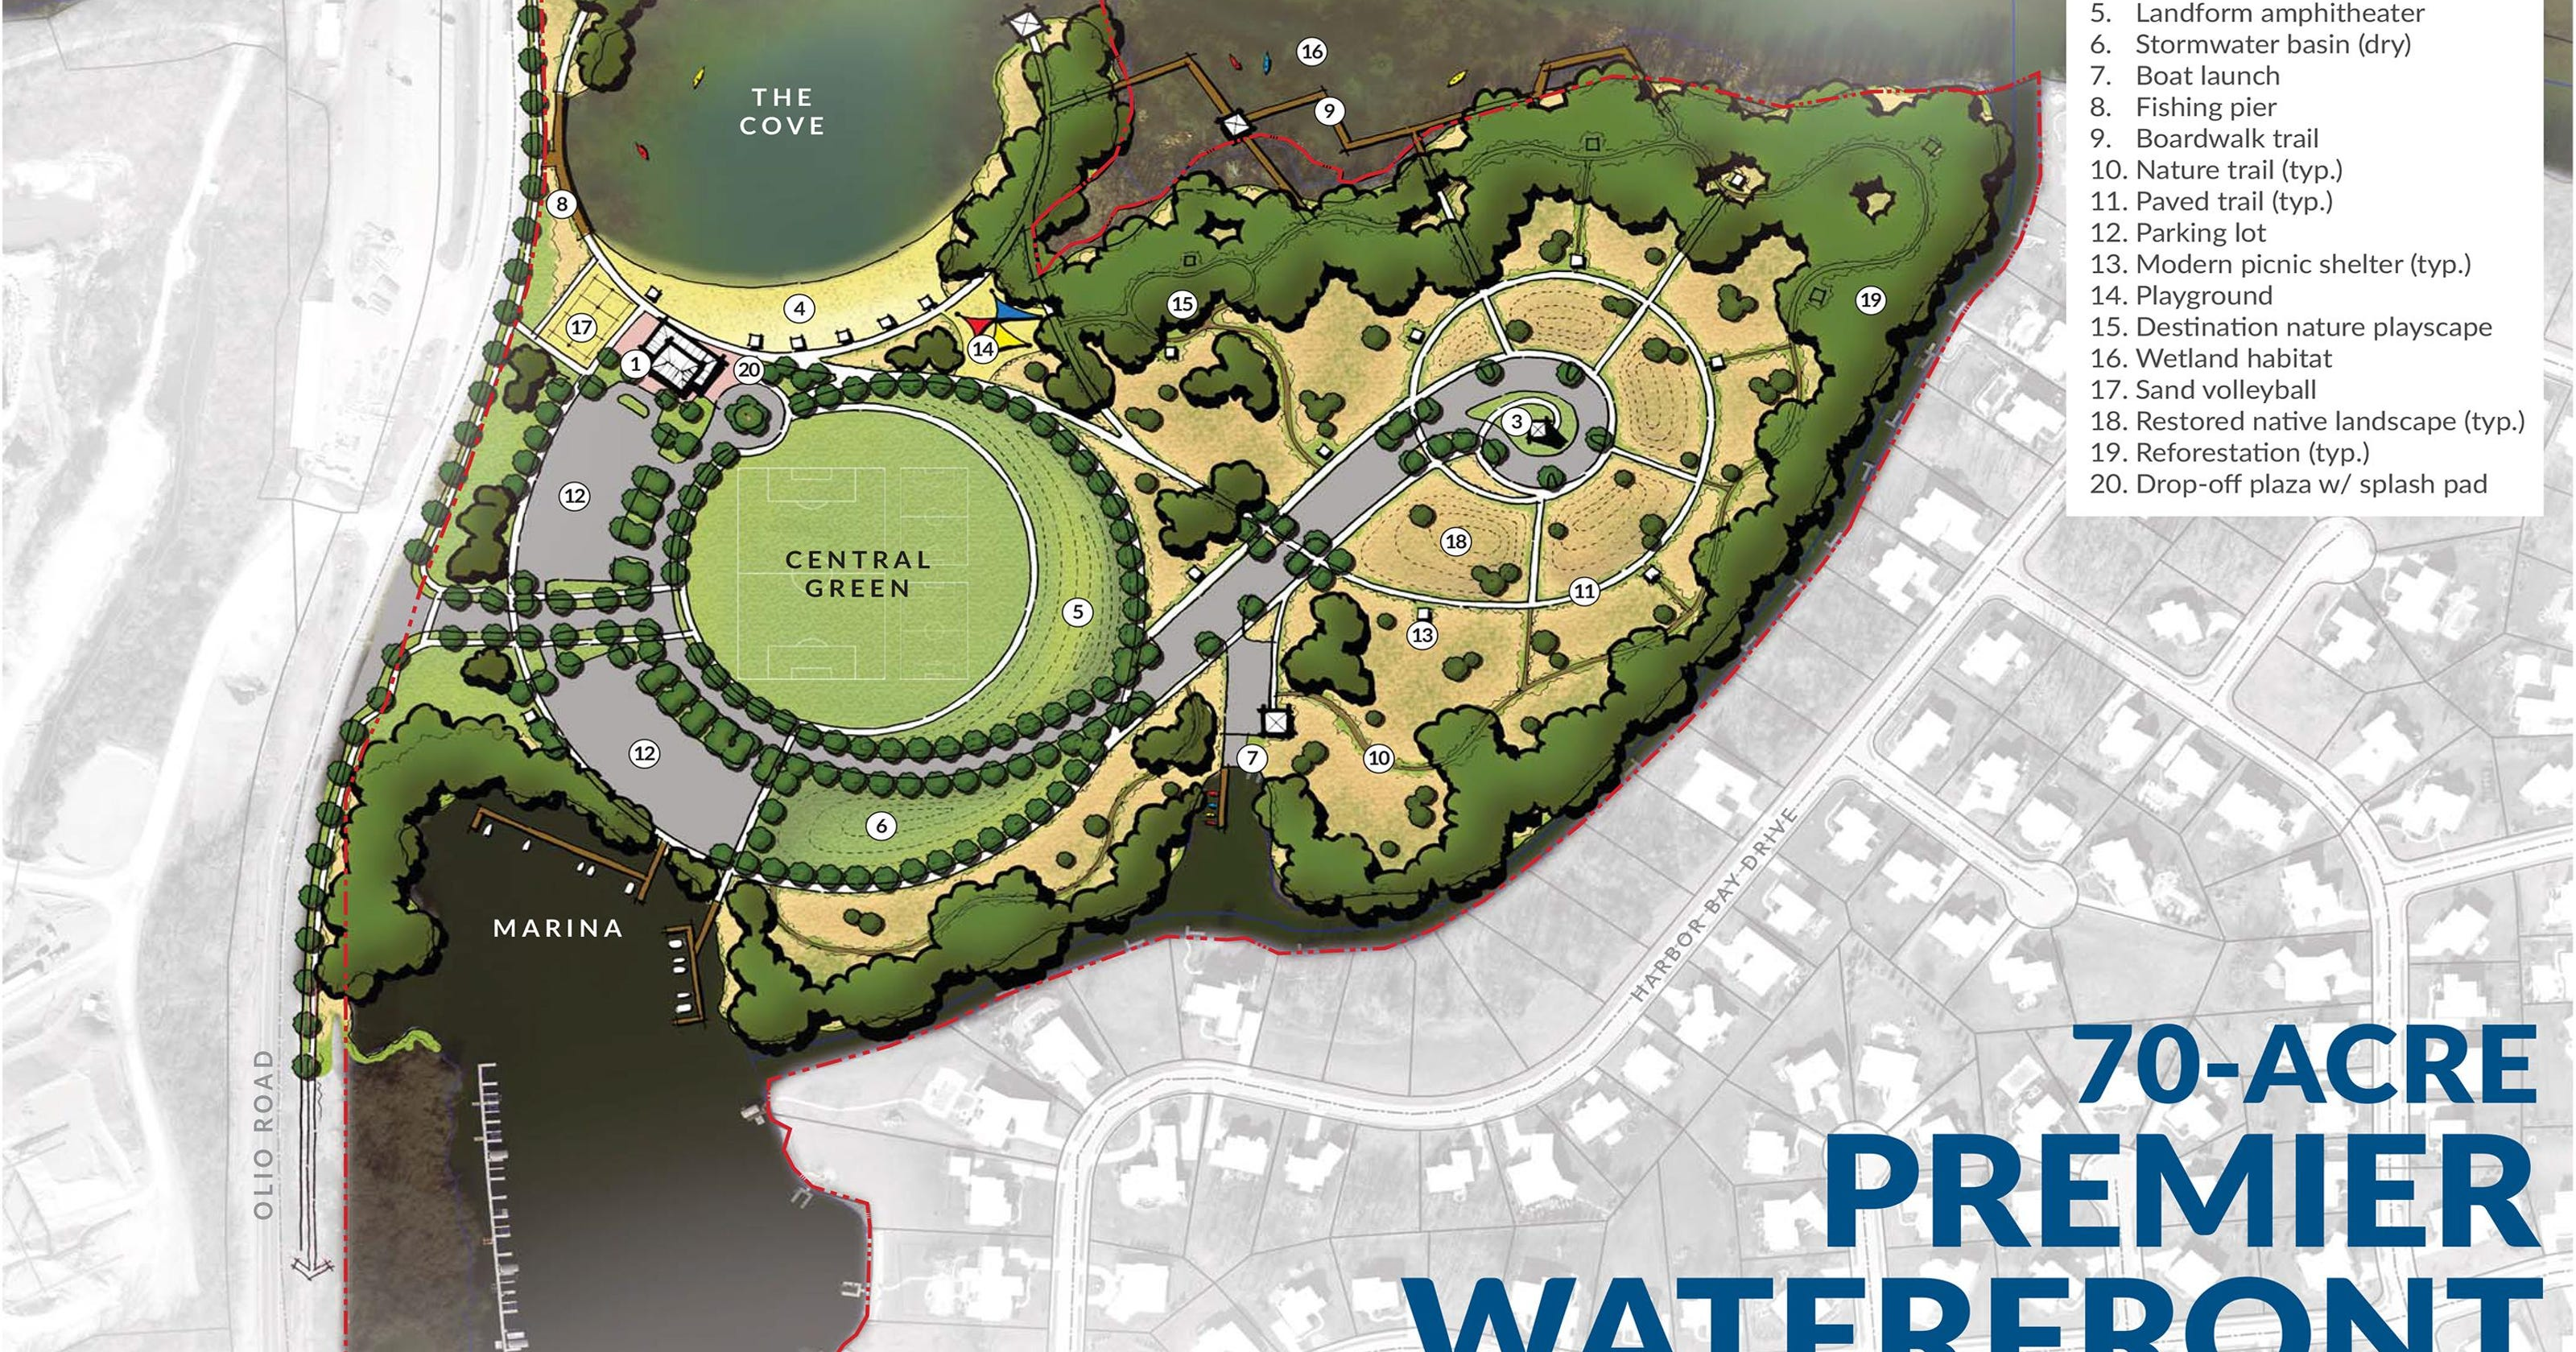 Geist, home of rich and famous, may get park, beach, open to all